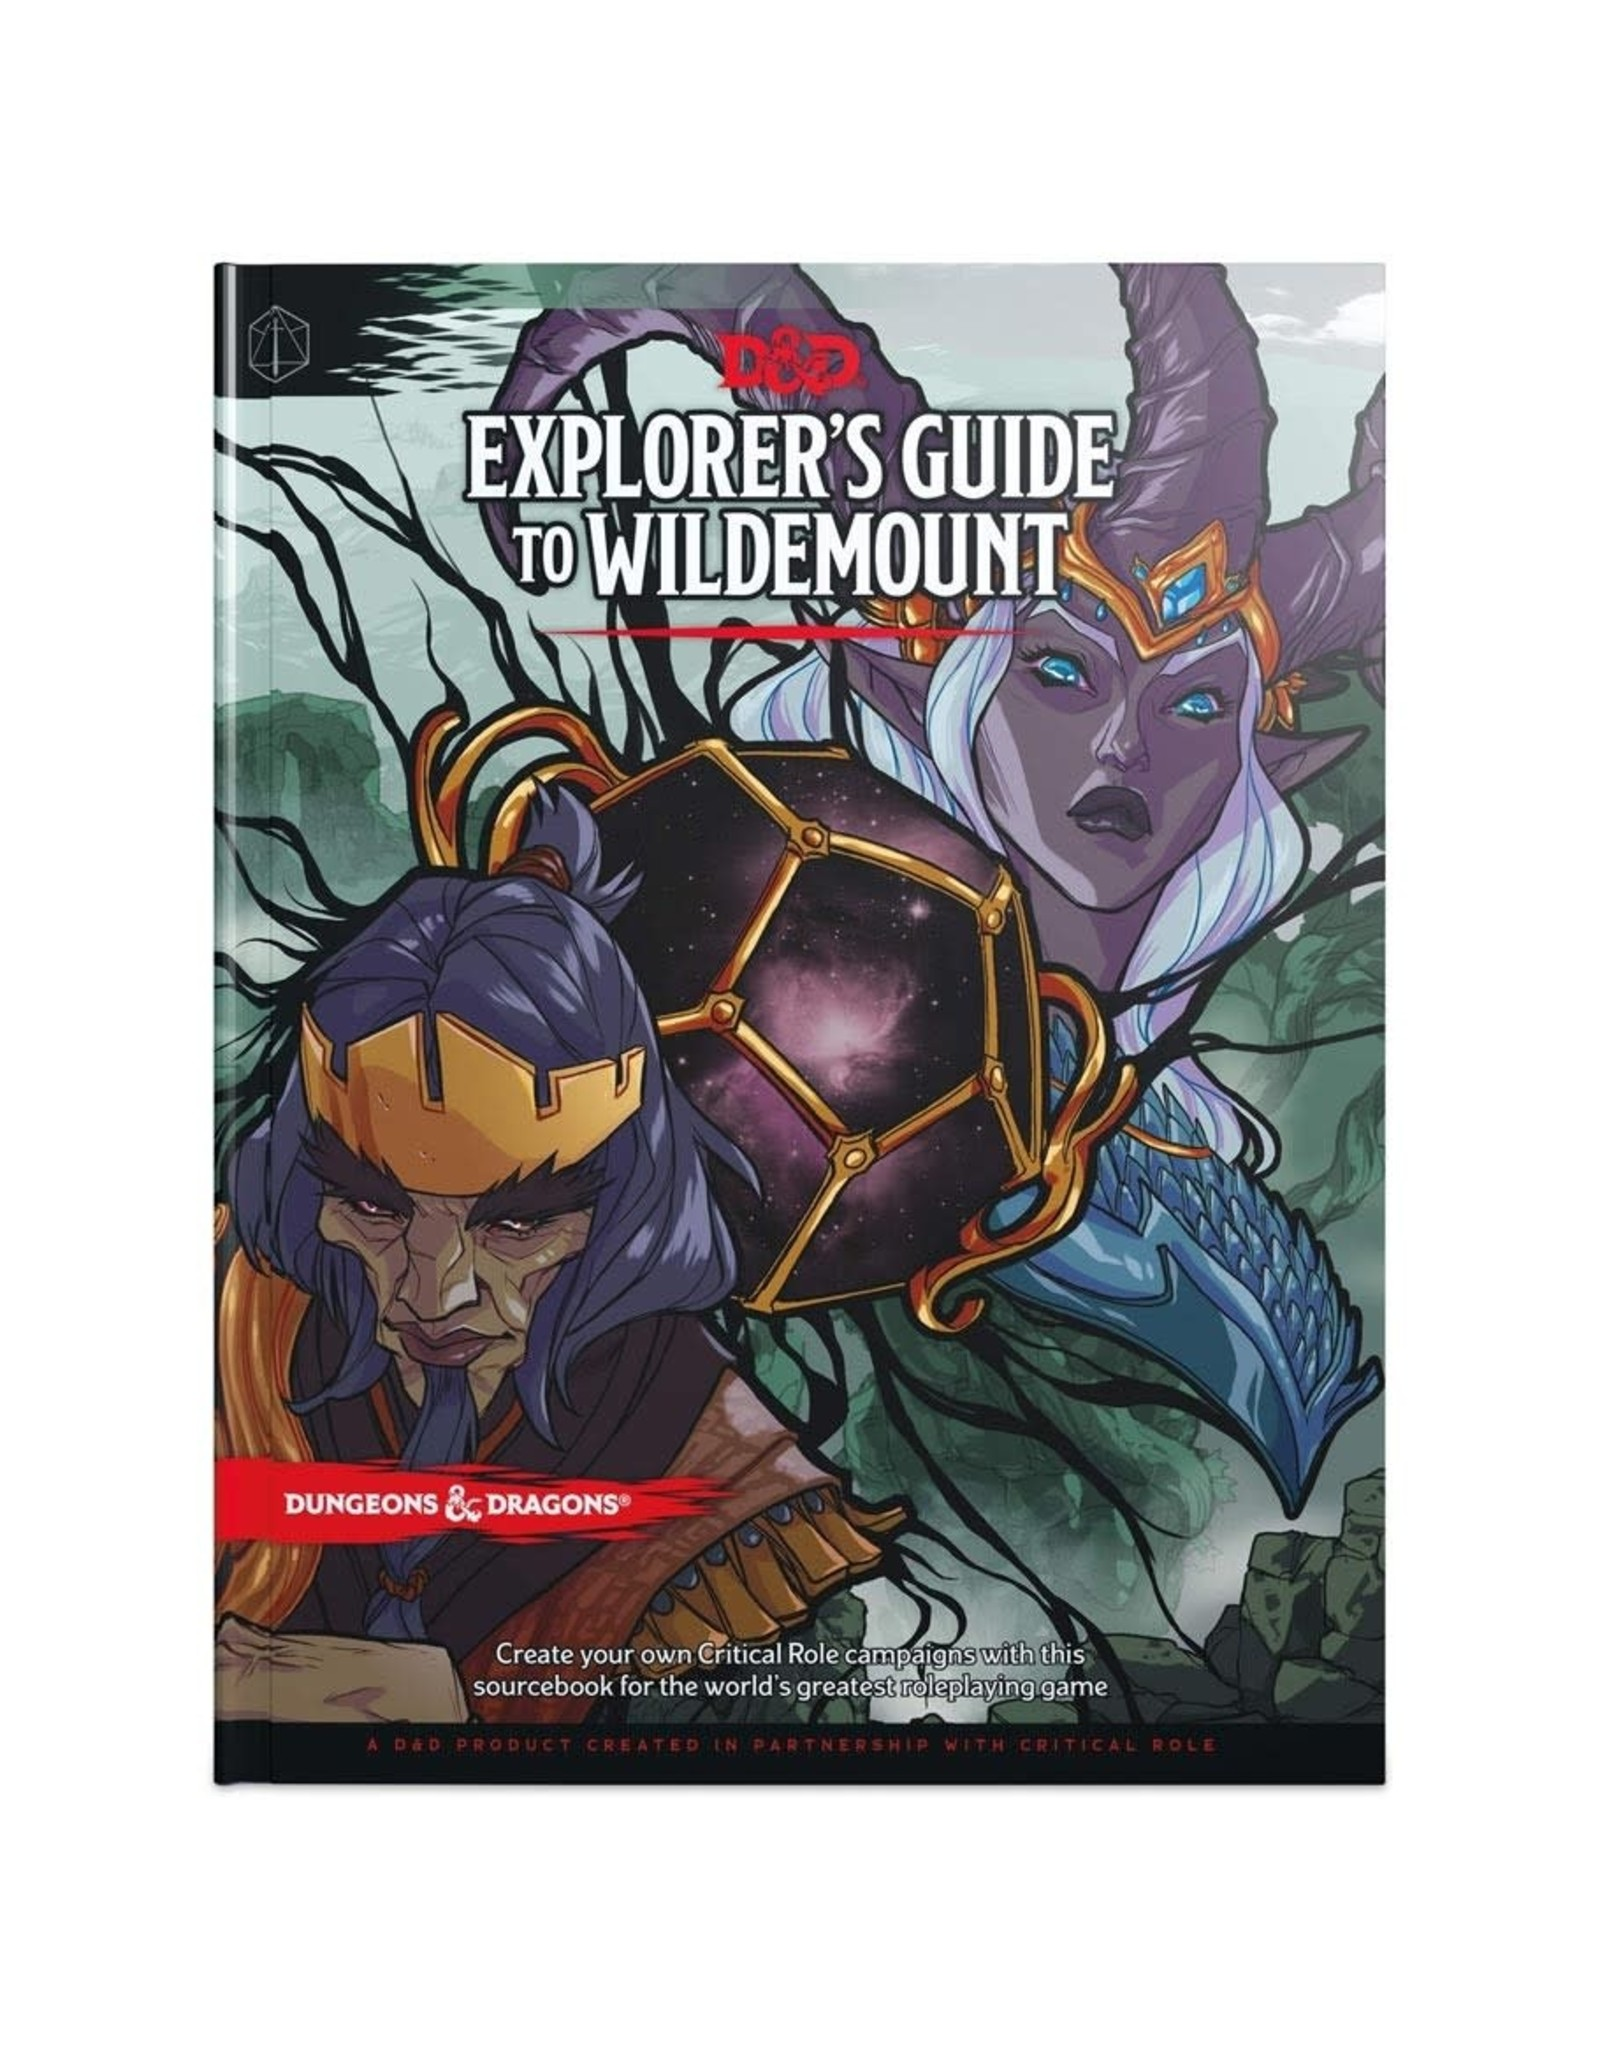 Dungeons & Dragons D&D 5e Explorer's Guide to Wildemount